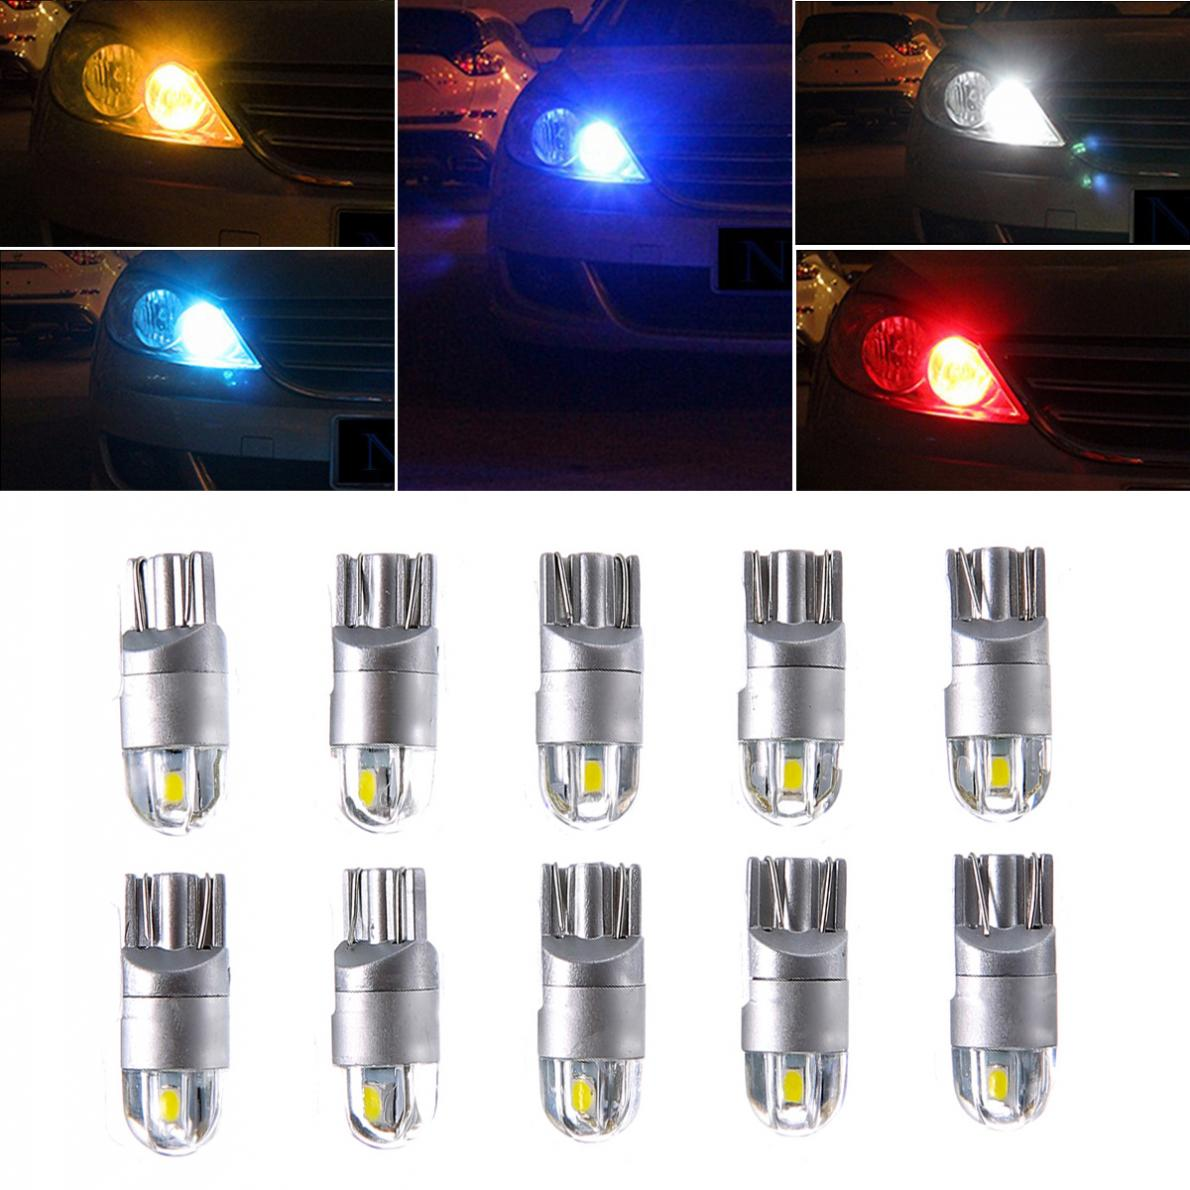 10x 12V W5W LED T10 3030 Car lamps 168 194 Turn Signal License Plate Light Trunk Lamp Clearance Lights Reading lamp itimo 10x t10 194 168 w5w 360 degree